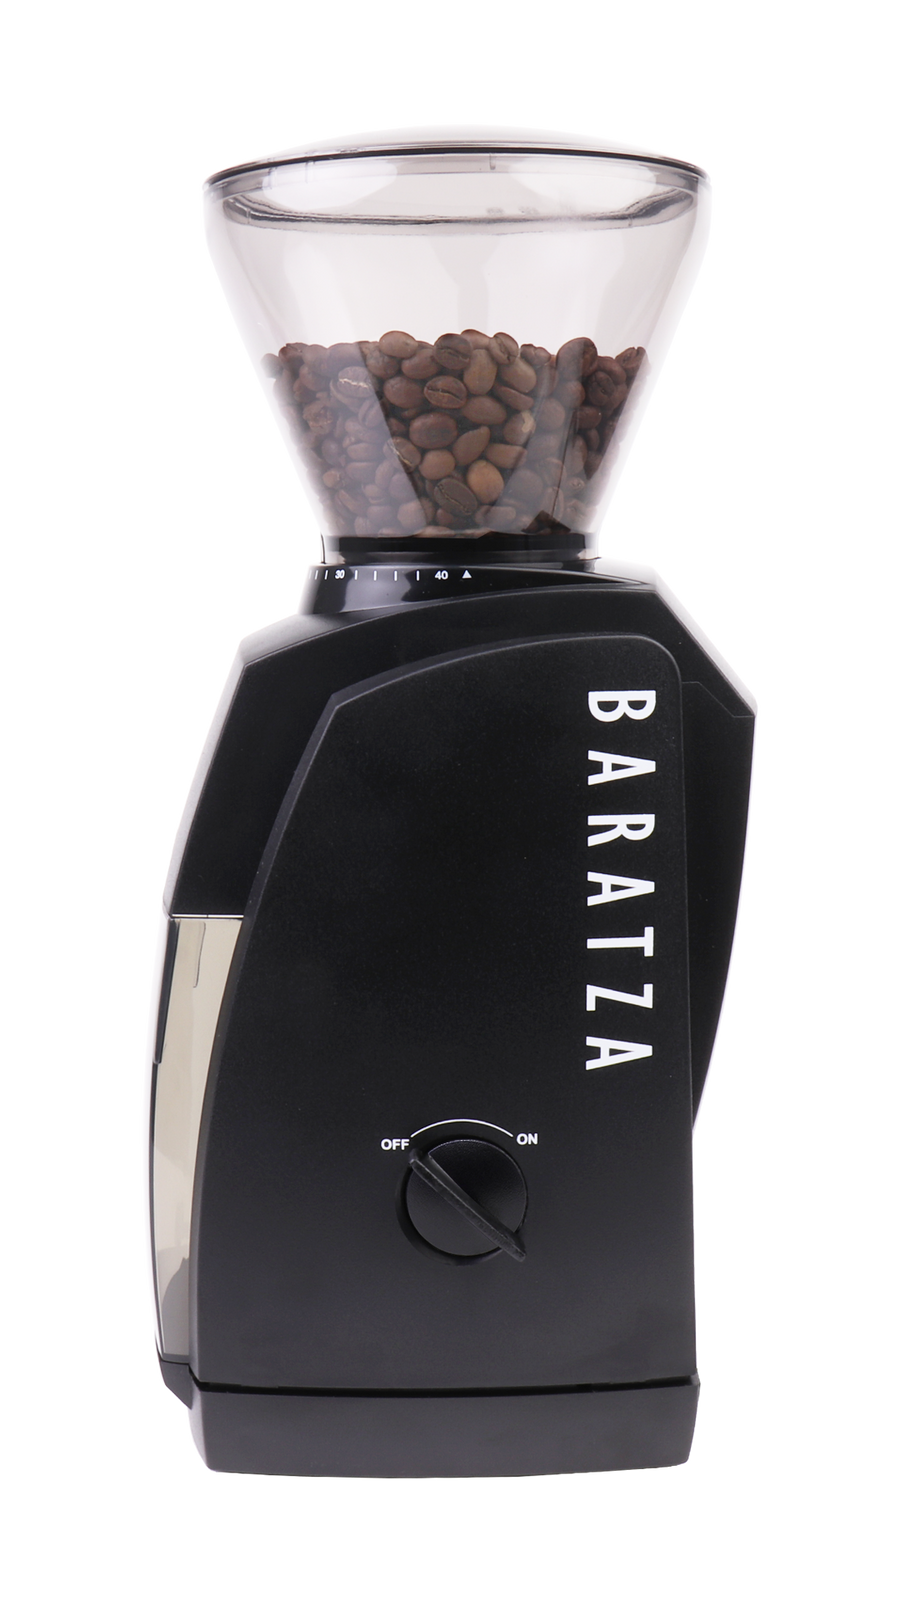 baratza-encore-coffee-bean-grinder-madison-wisconsin-Side